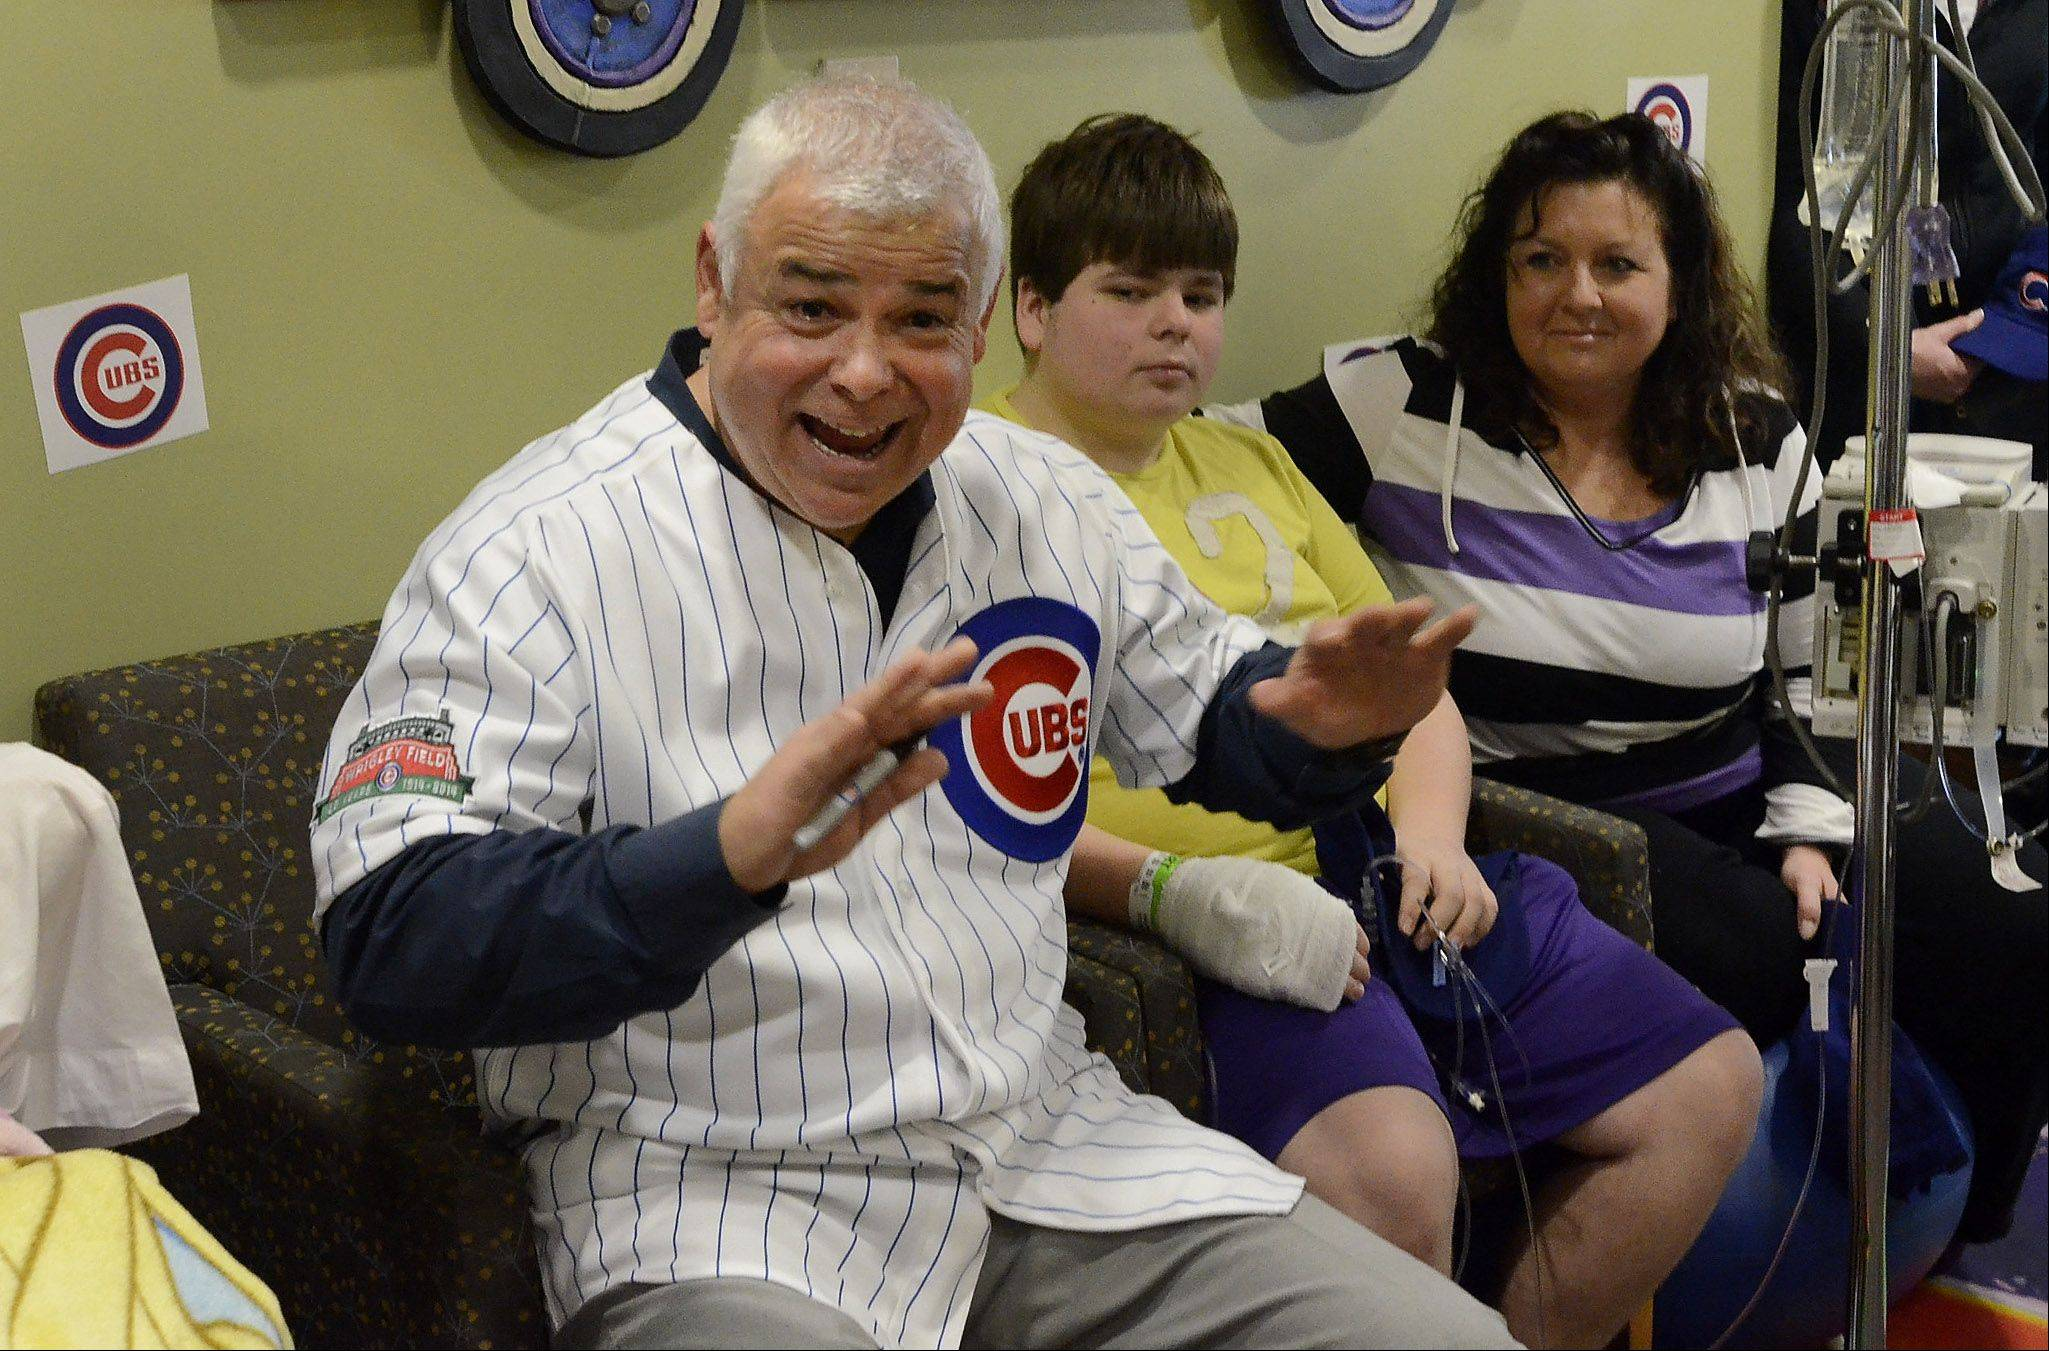 New Chicago Cubs manager Rick Renteria visited with children at Advocate Children's Hospital in Park Ridge Friday.